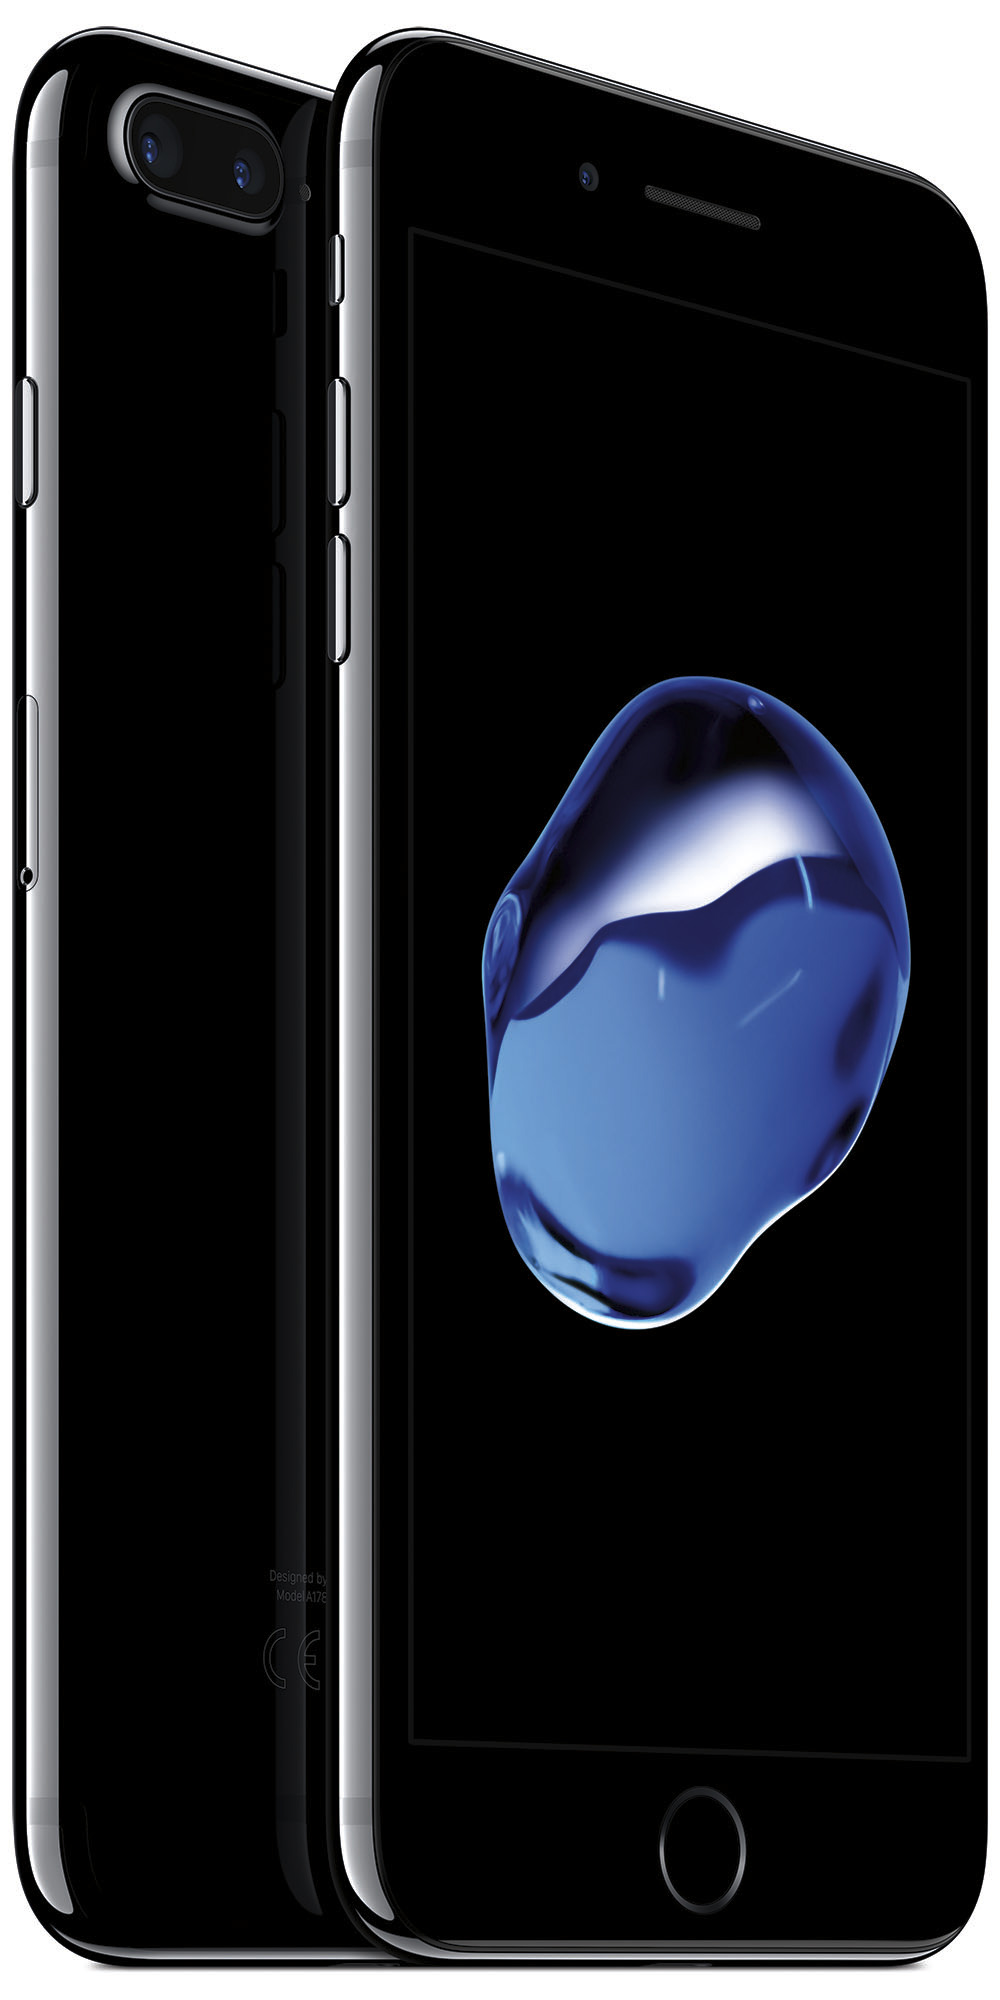 Смартфон Apple iPhone 7 Plus 128GB (черный оникс)